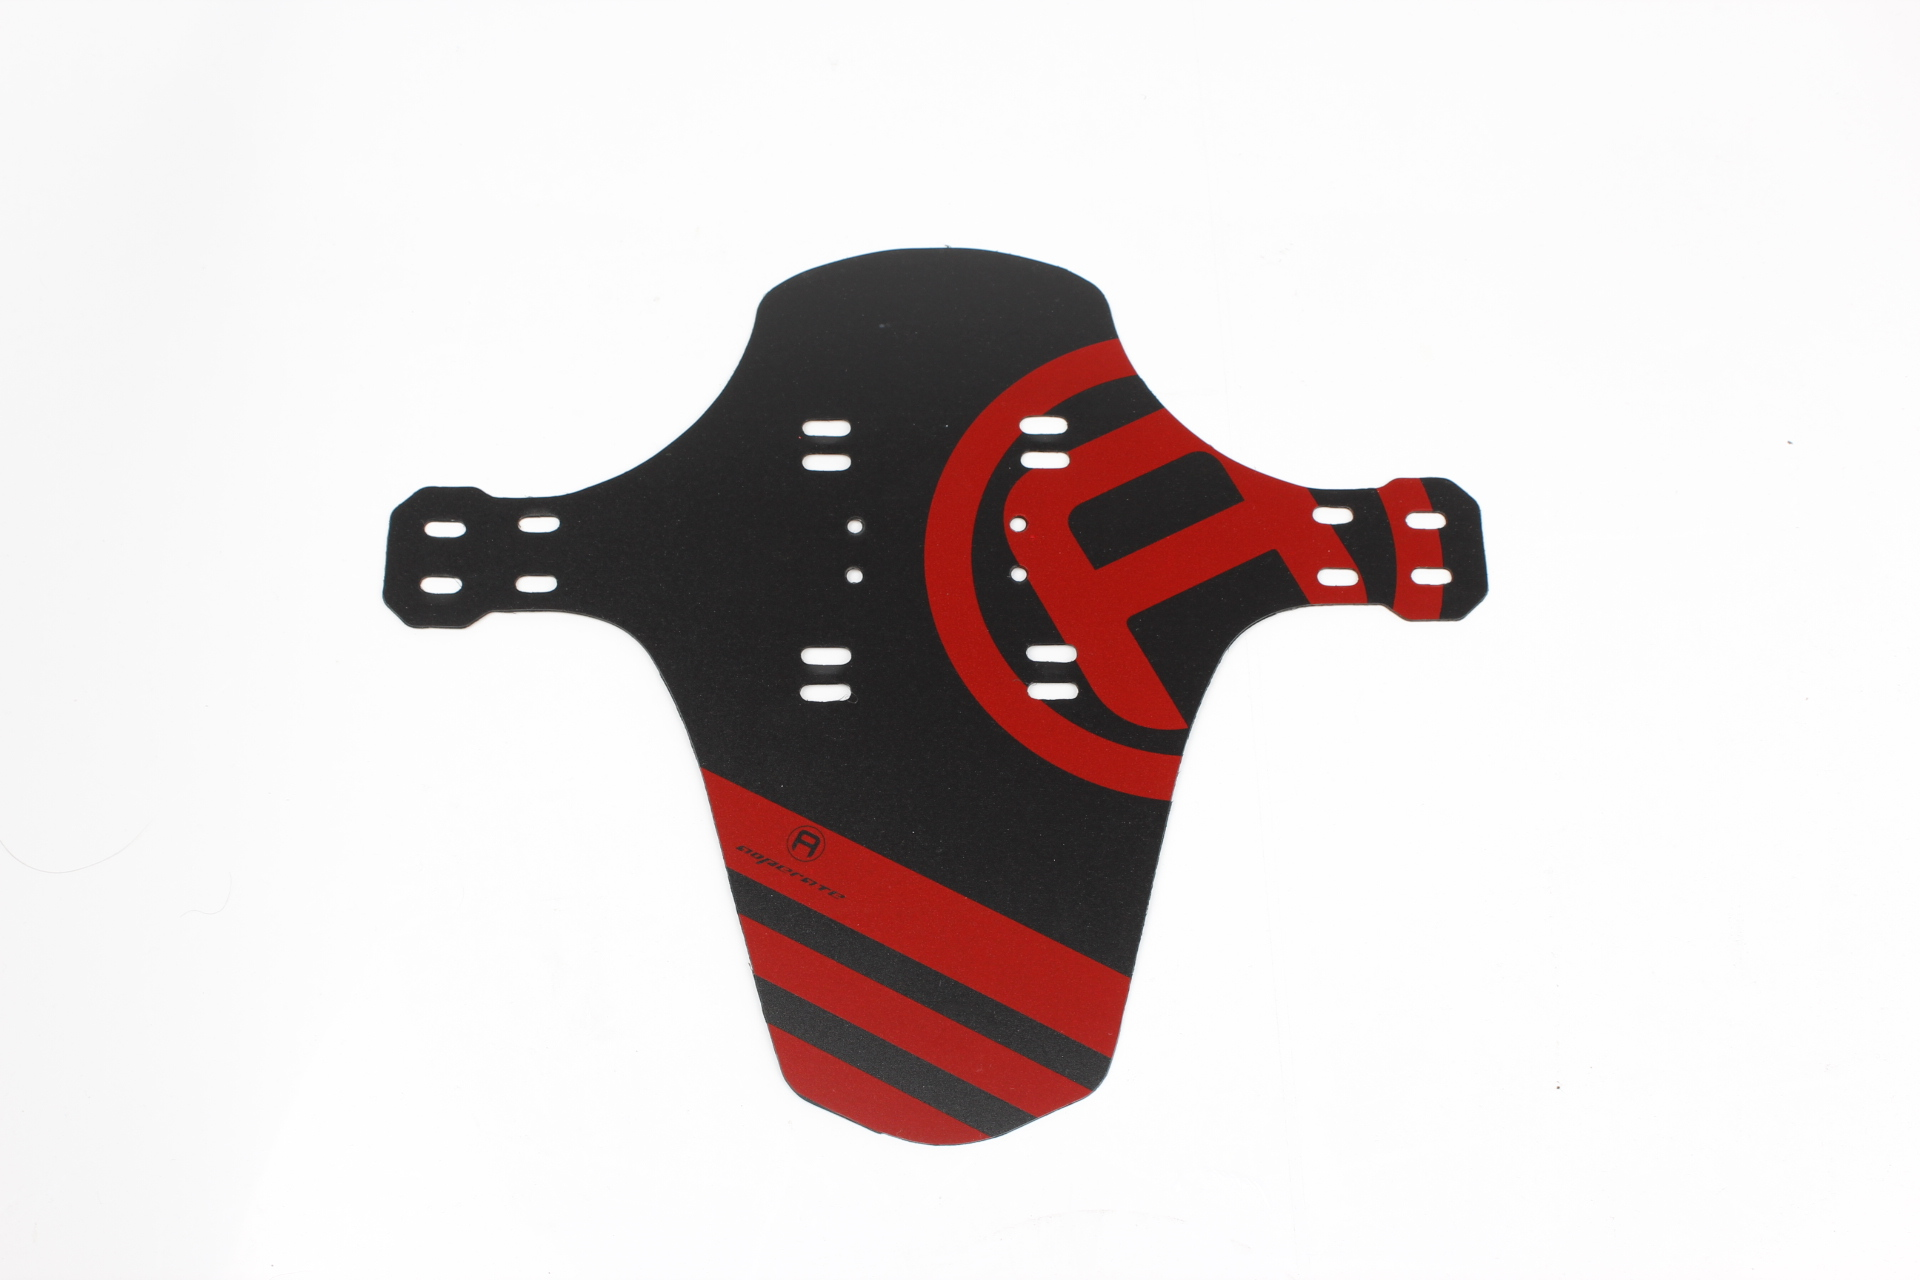 Bicycle Front Rear Mudguard Fenders MTB Road Bike Cycling PP resin Accessories BMX Racing Touring Fenders